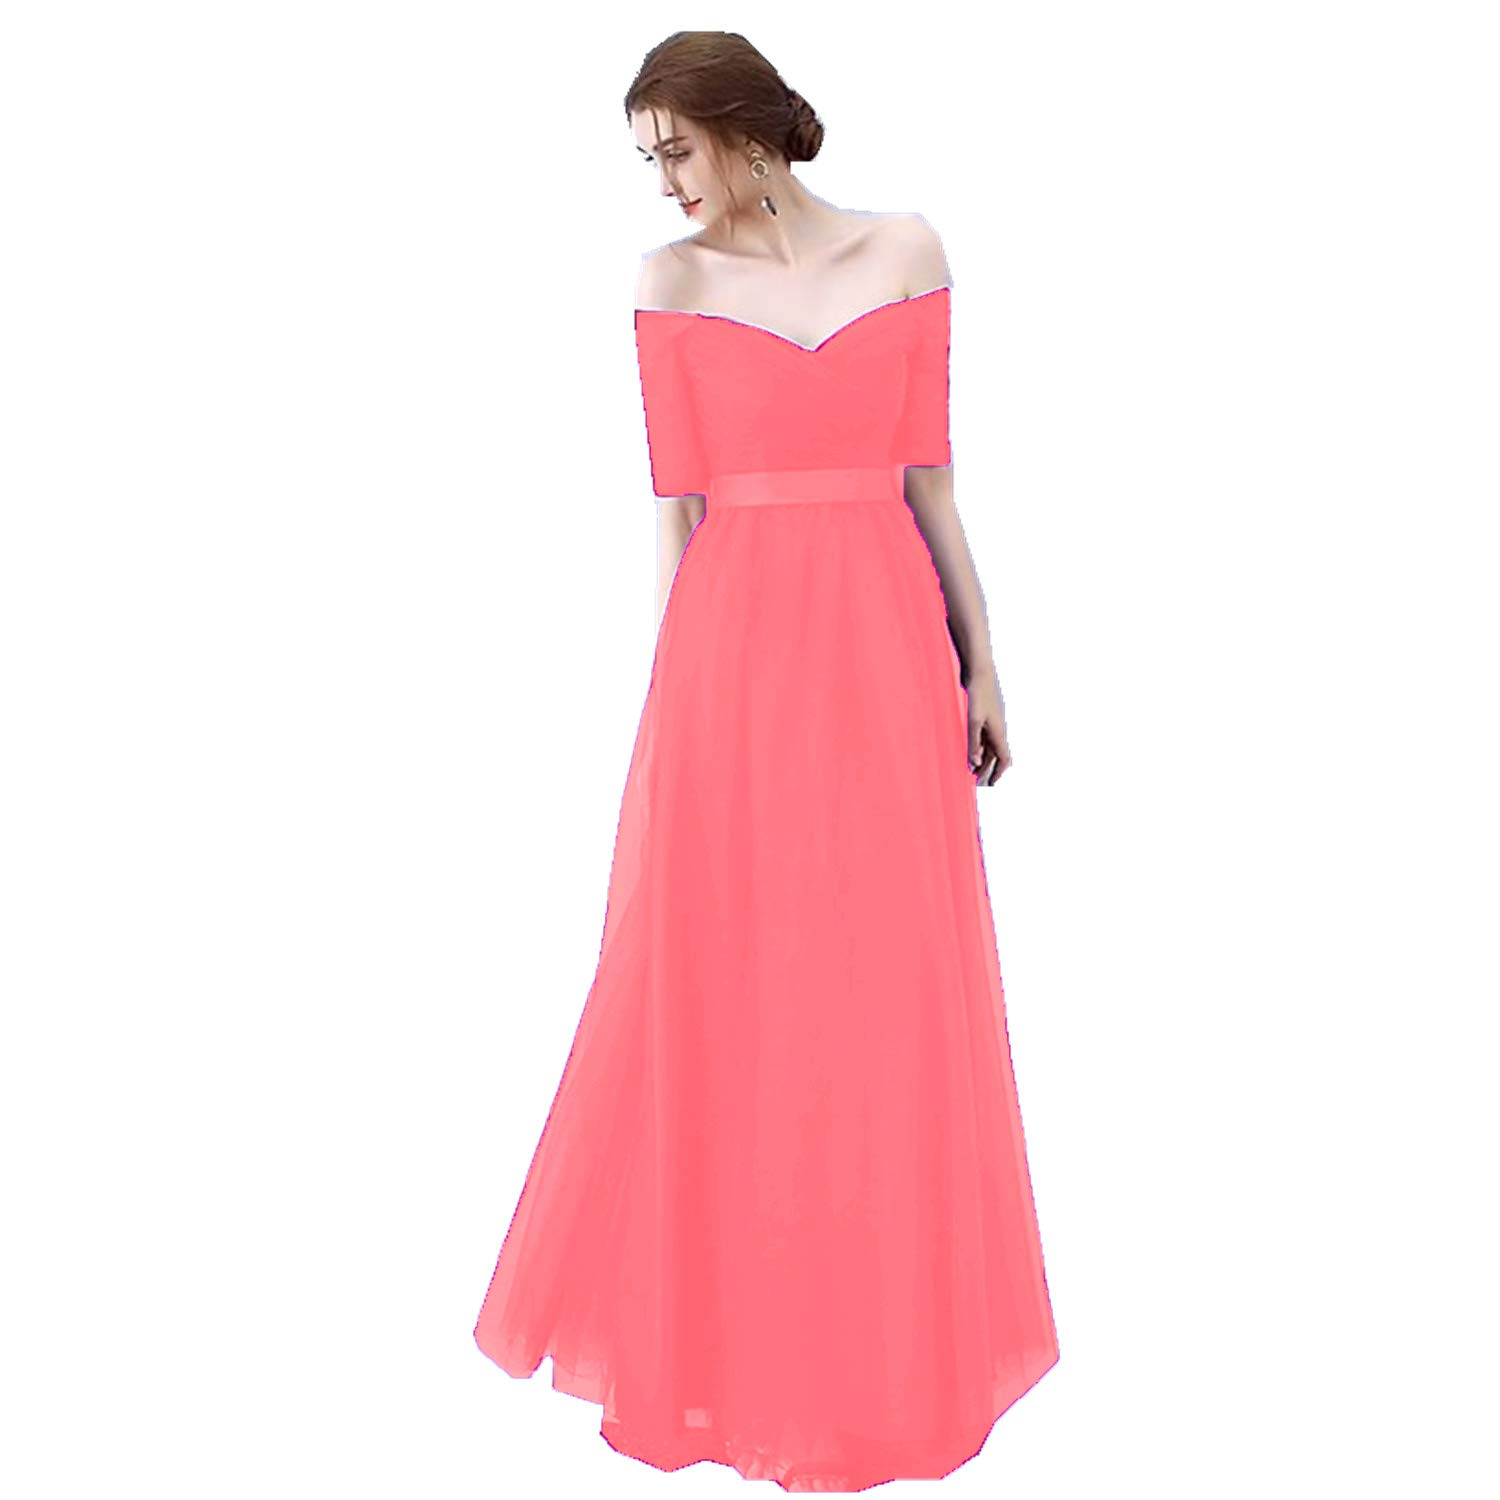 Dark Coral Ruiyuhong Women's VNeck Off The Shoulder Bridesmaid Dresses Long Tulle Wedding Party Gown